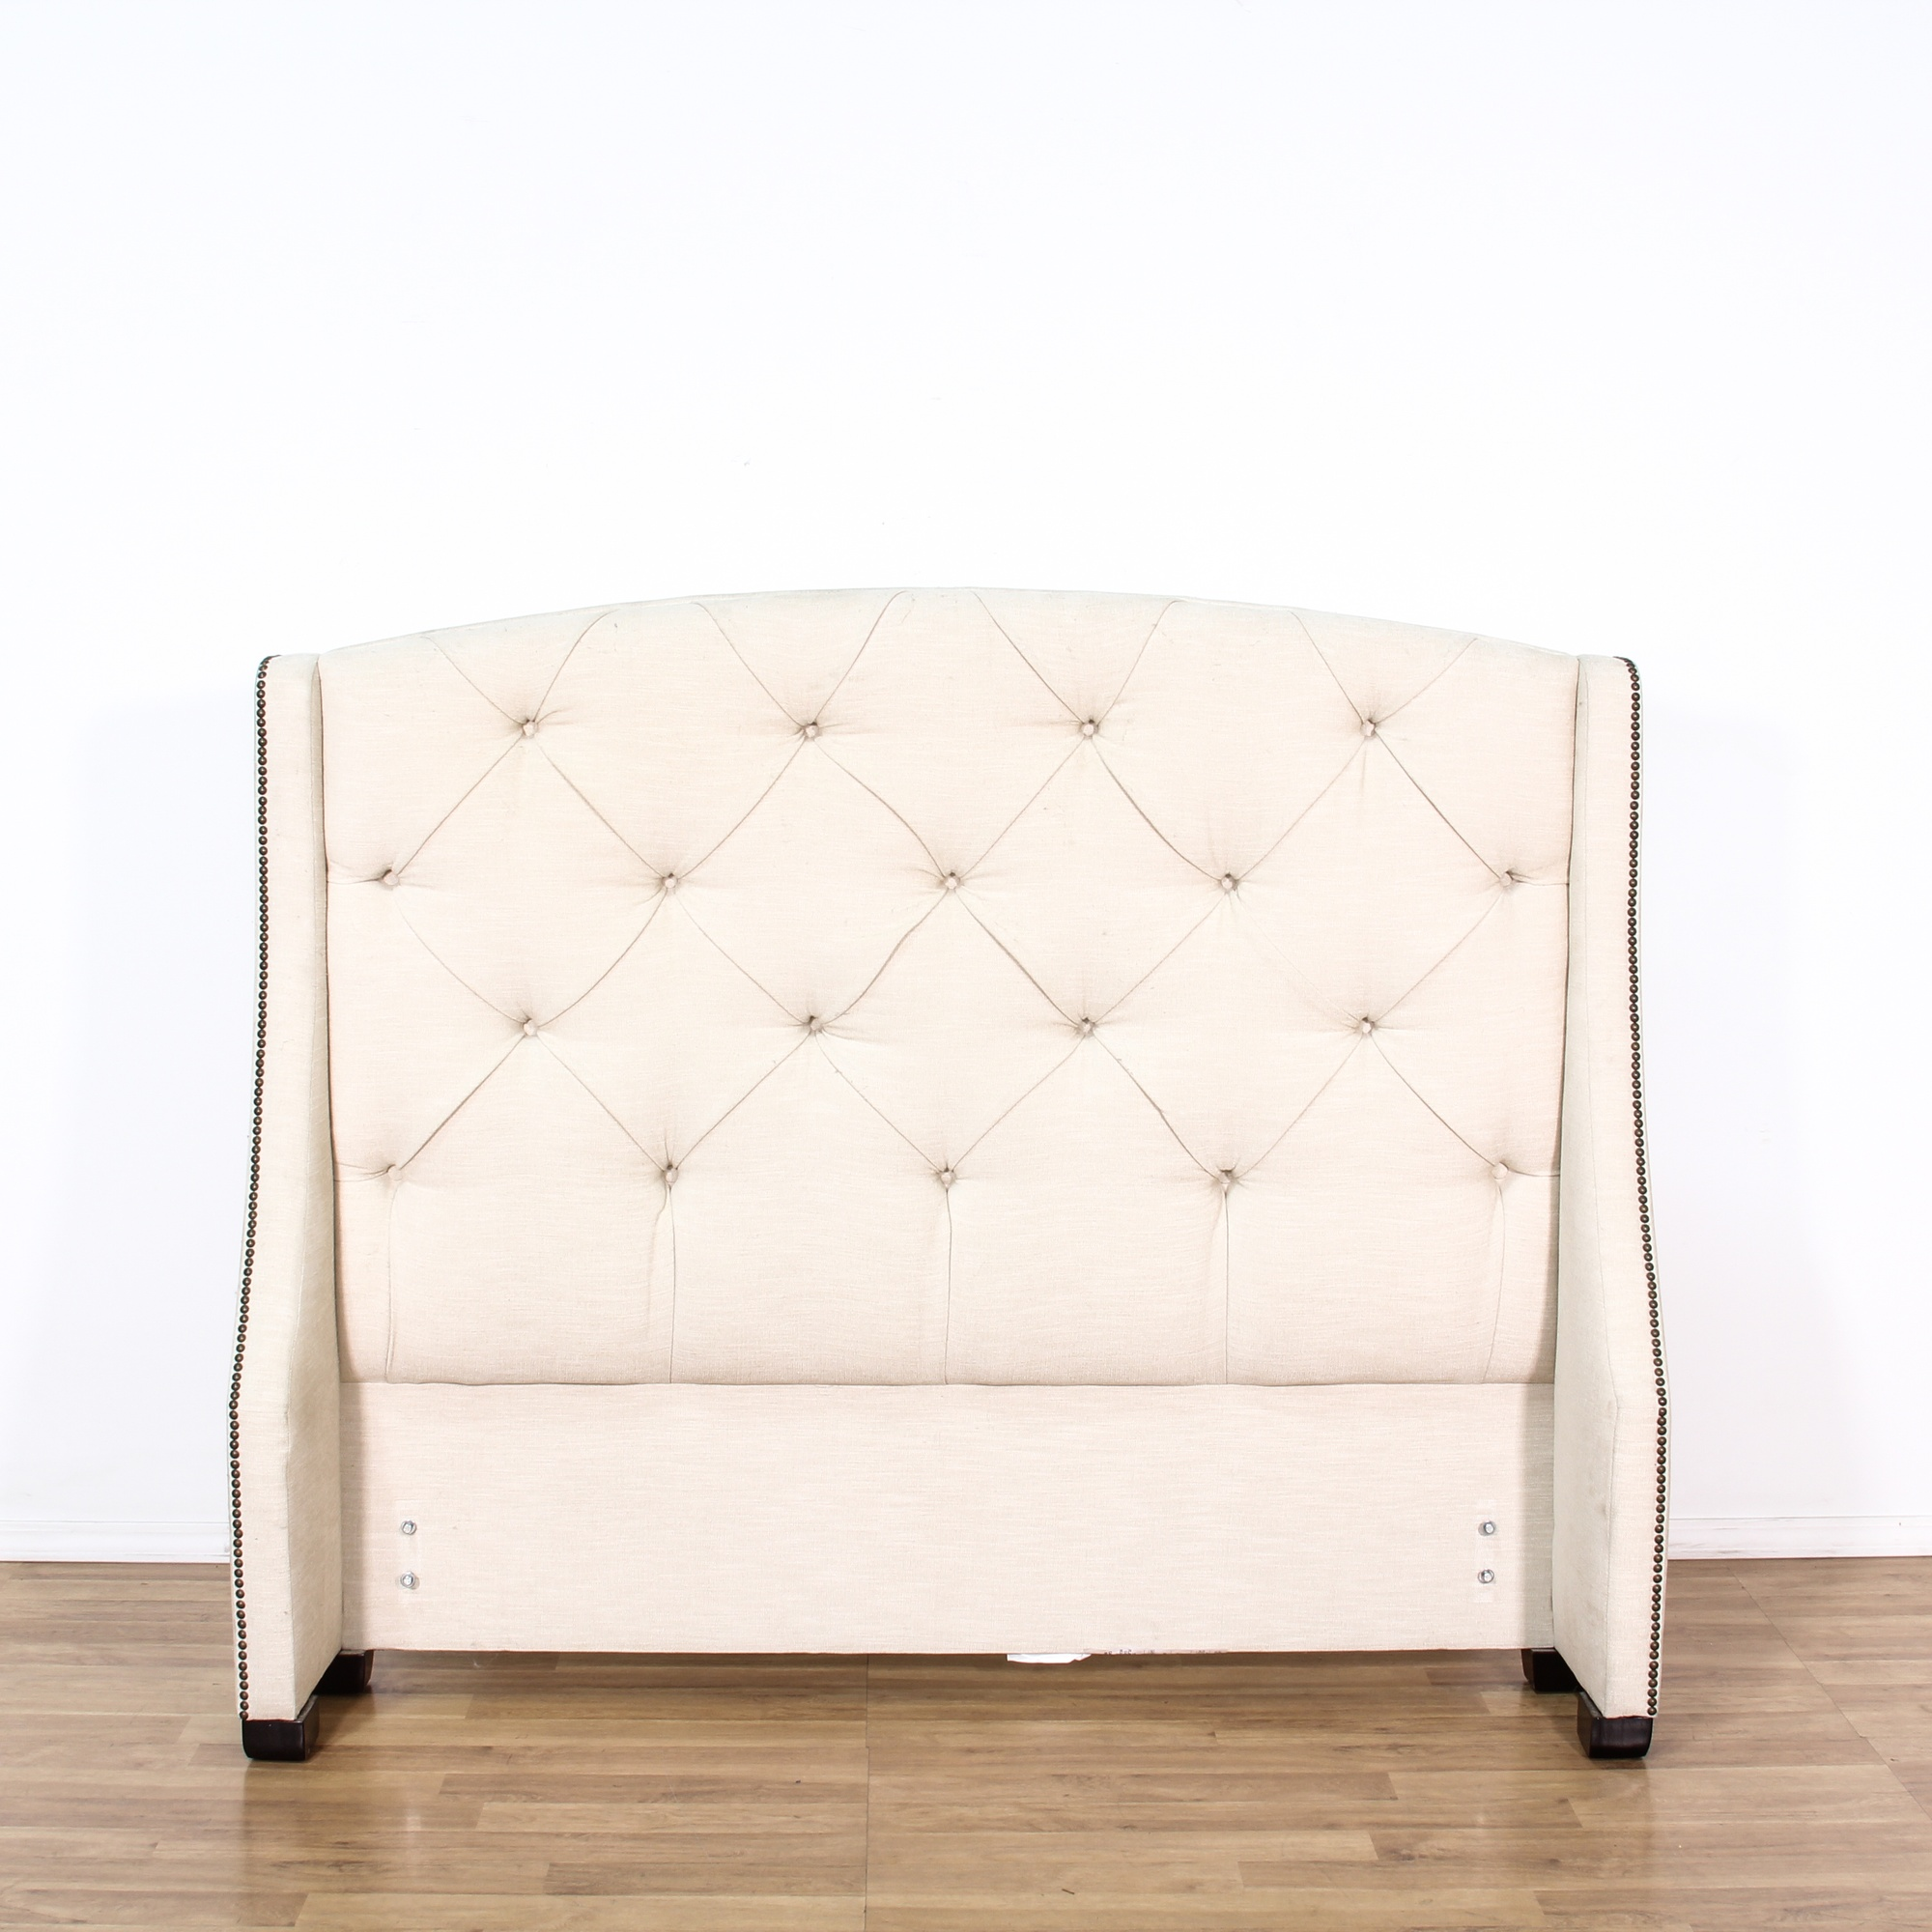 Queen Cream Tufted Amp Studded Upholstered Headboard